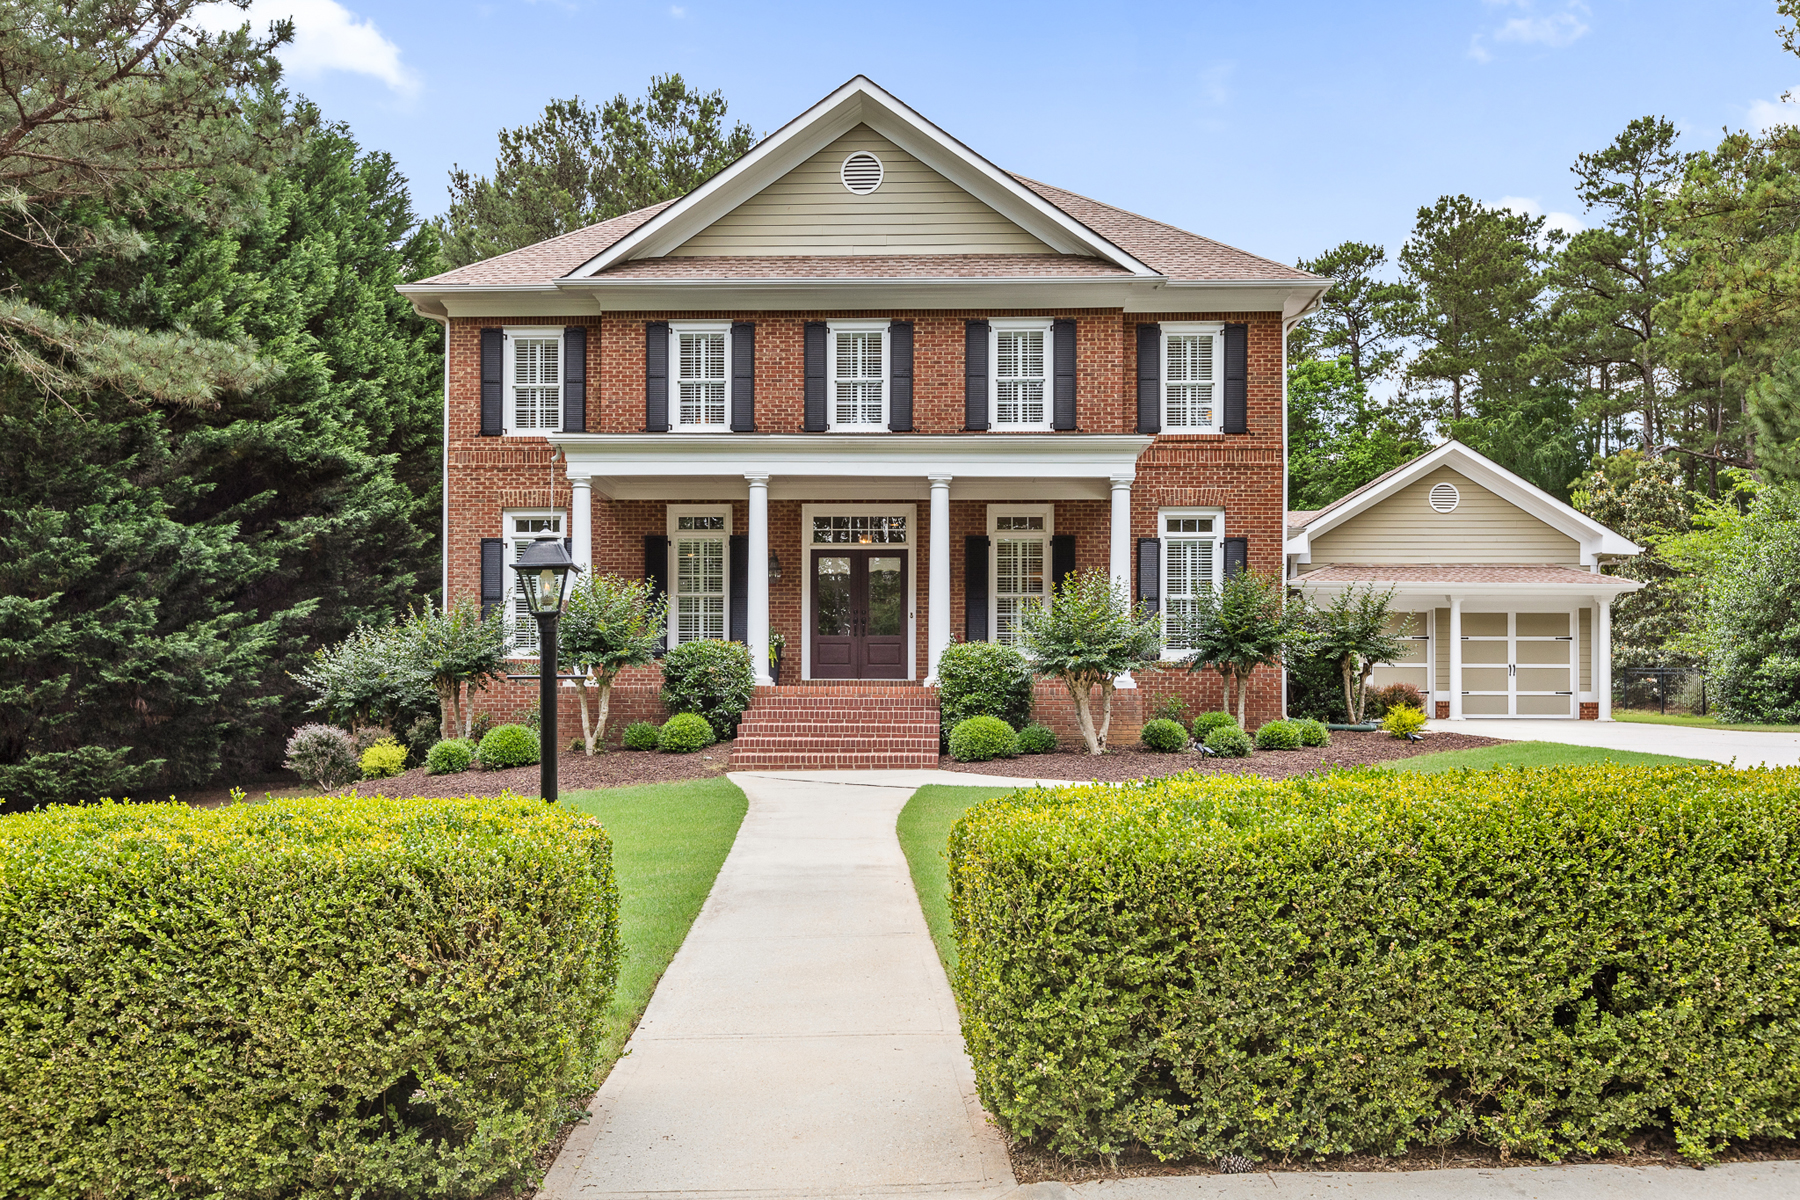 Single Family Homes for Sale at Awesome Full Brick House in Highgrove 135 Meeting House Road Fayetteville, Georgia 30215 United States